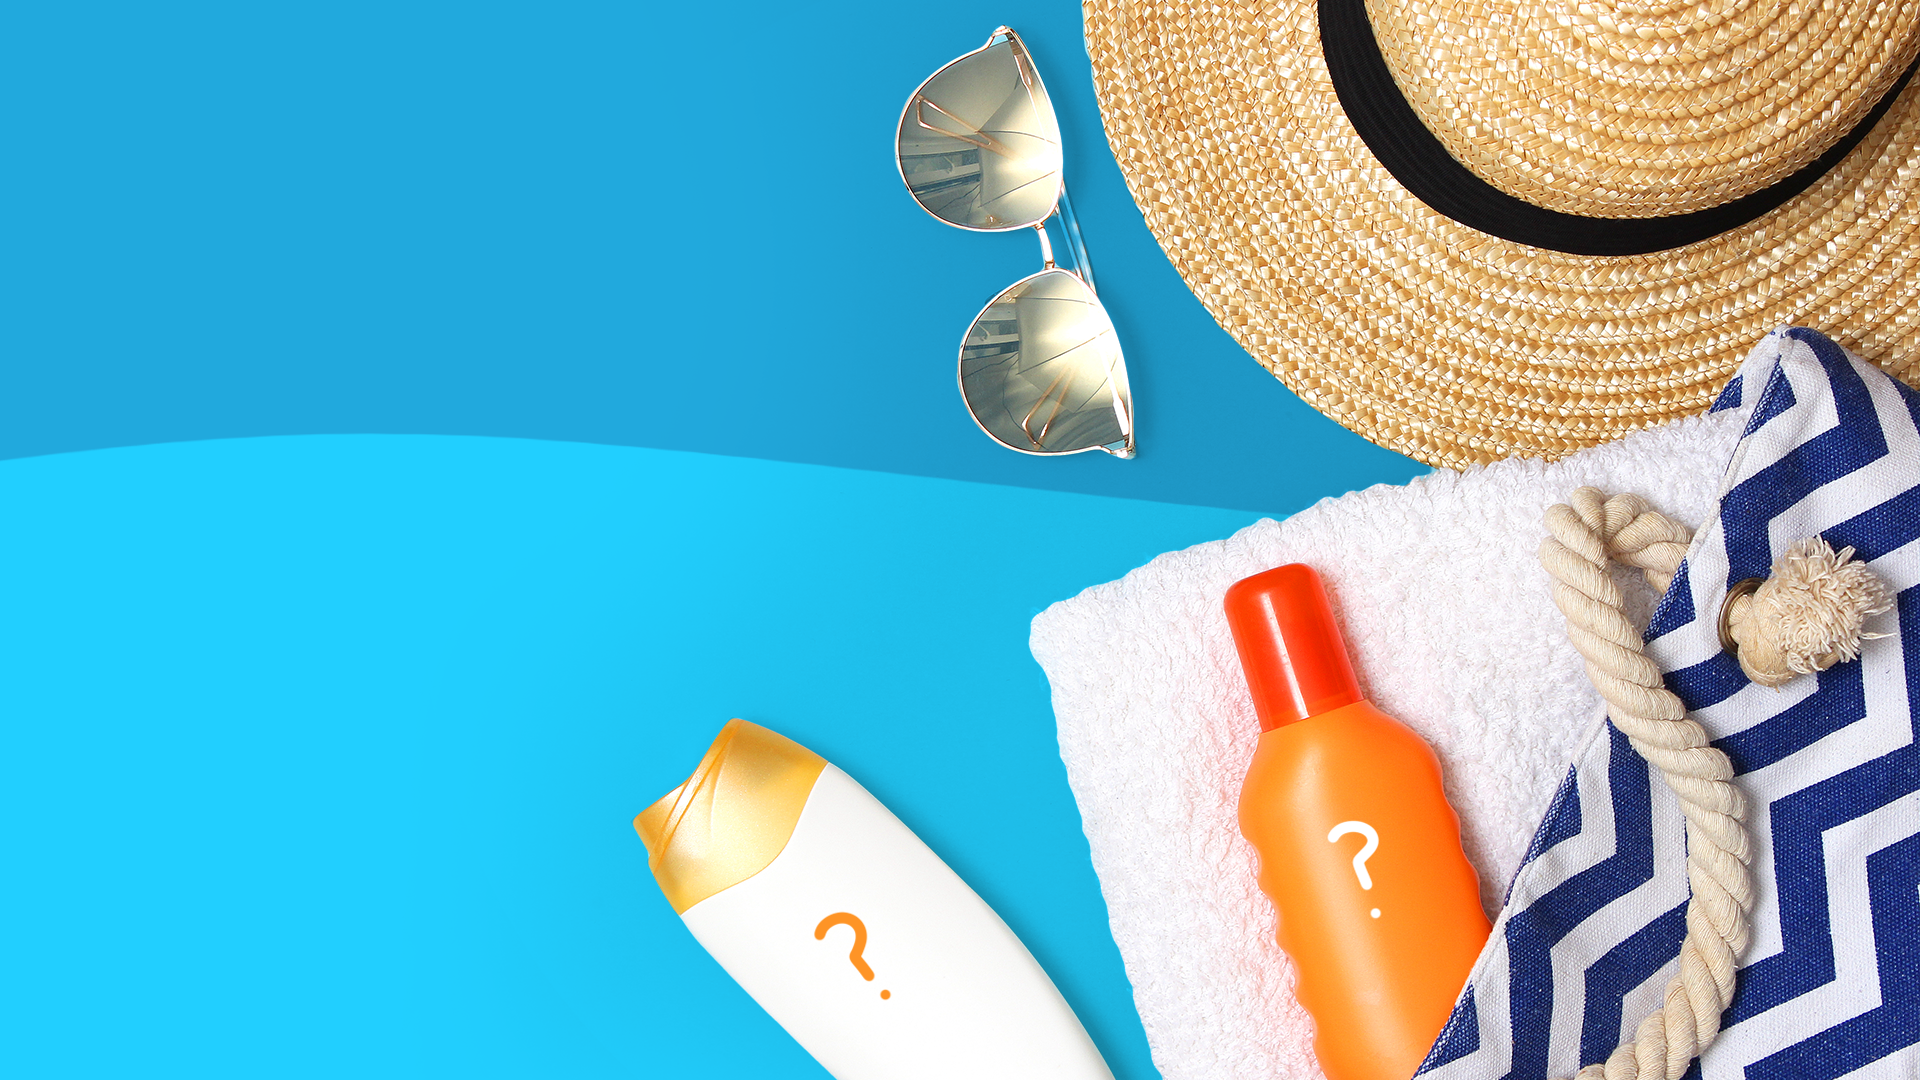 Does sunscreen expire?